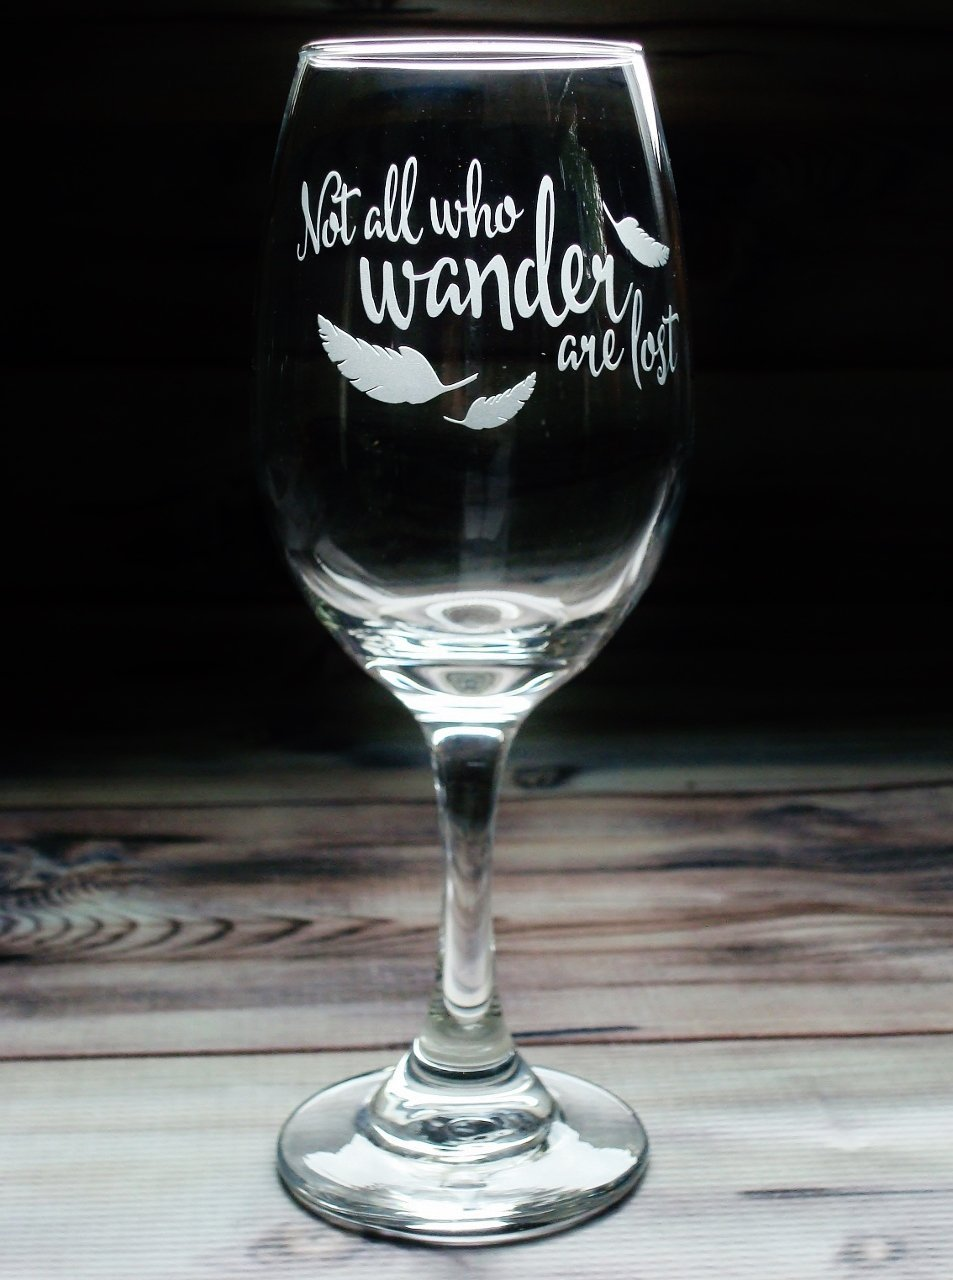 College Graduation Gift Ideas Birthday Gift Ideas Inspirational Gift Ideas ''Not all who wander are lost'' Wine Glass